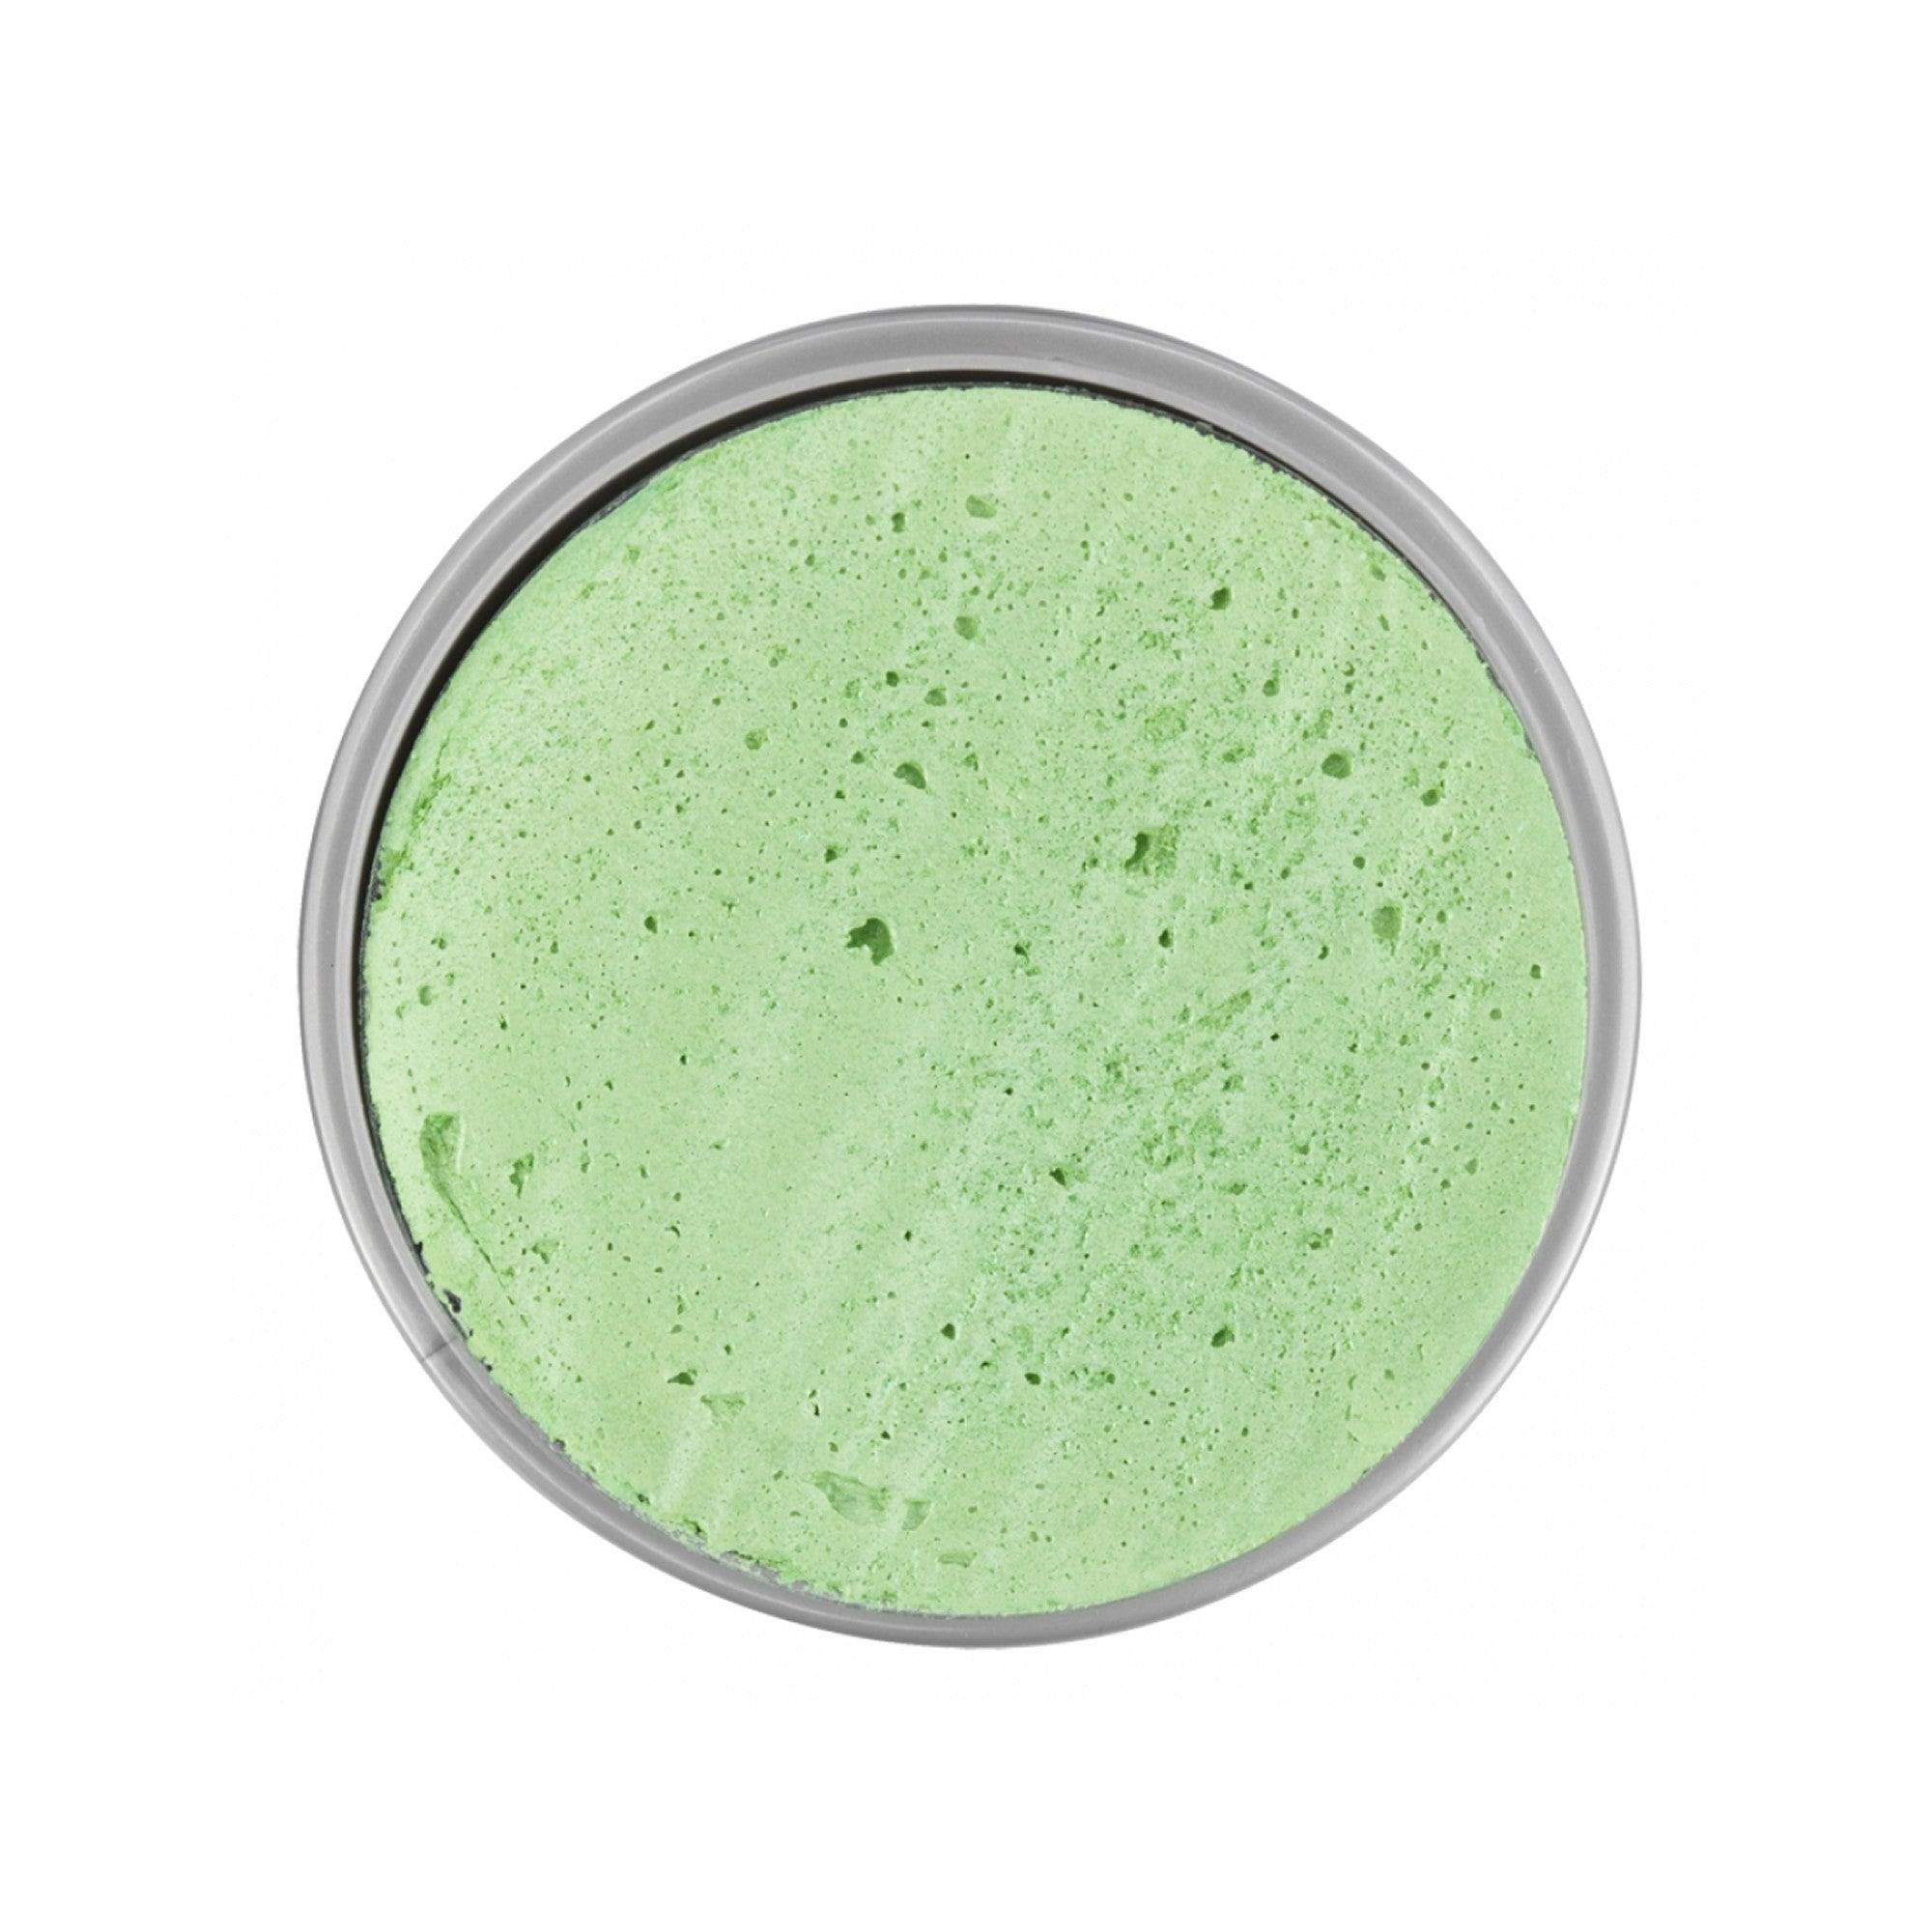 Snazaroo Sparkle Pale Green Face Paint 18ml - Red Carpet FX - Professional Makeup